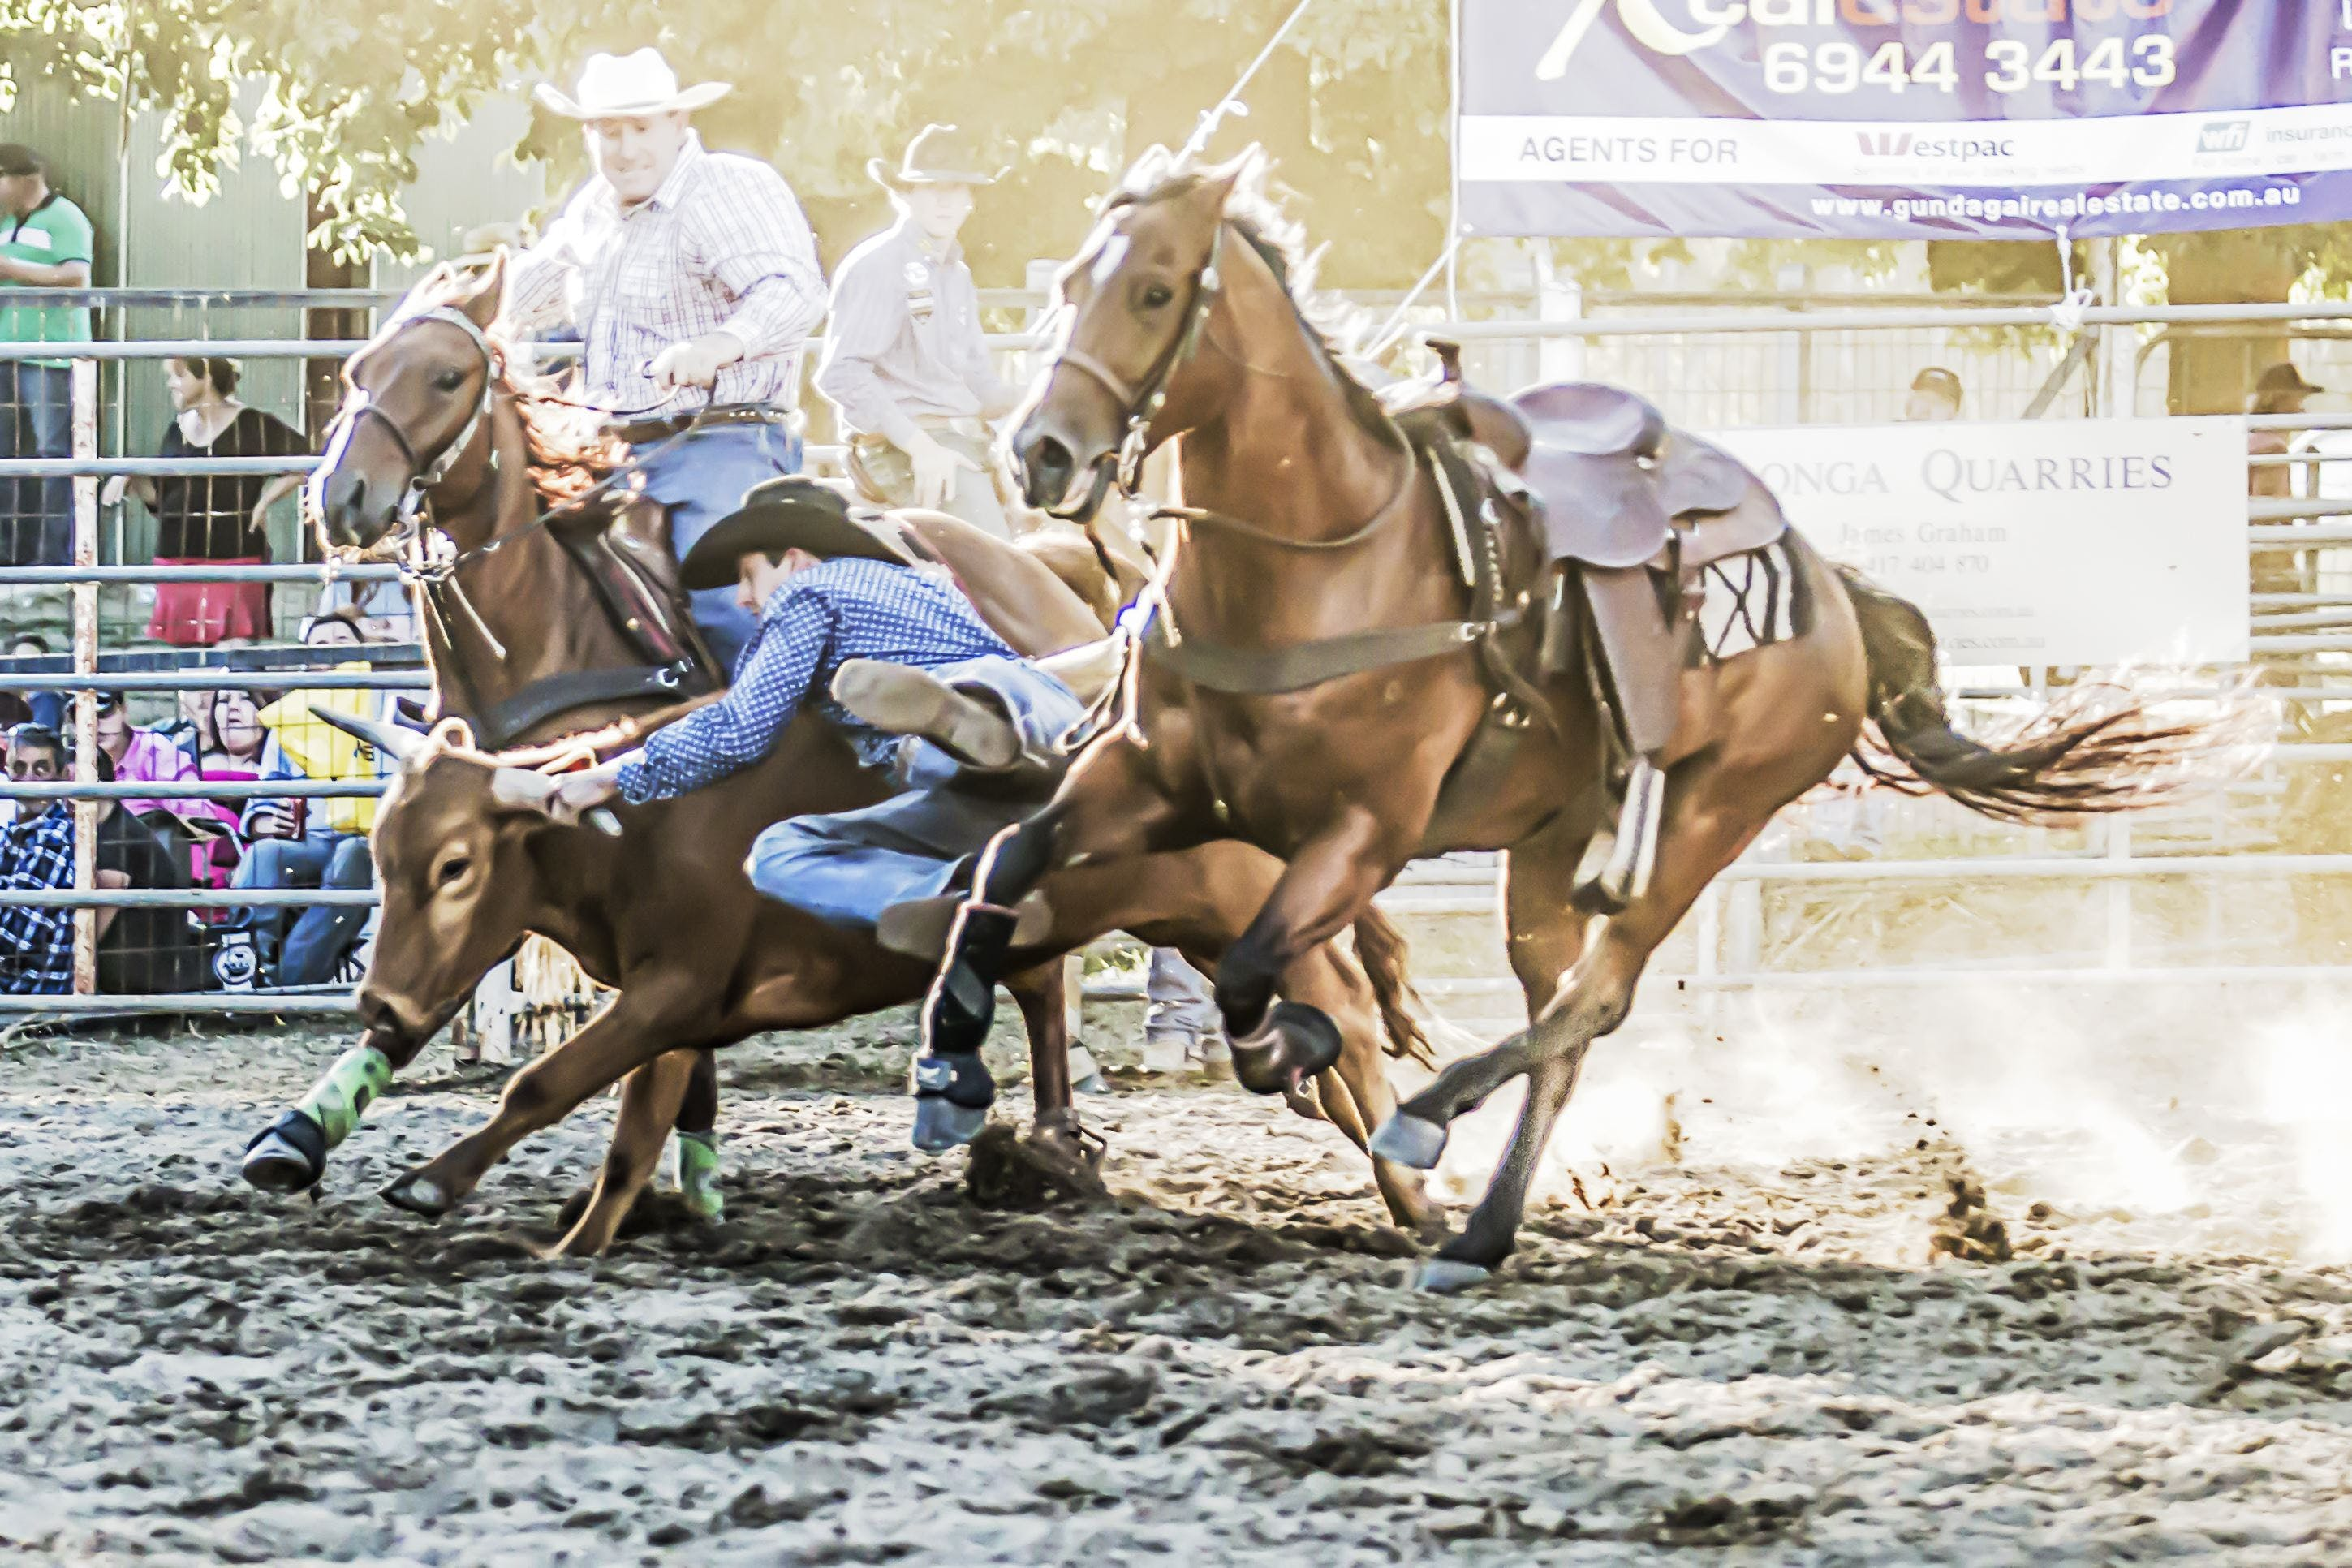 Gundagai Rodeo - Accommodation in Surfers Paradise